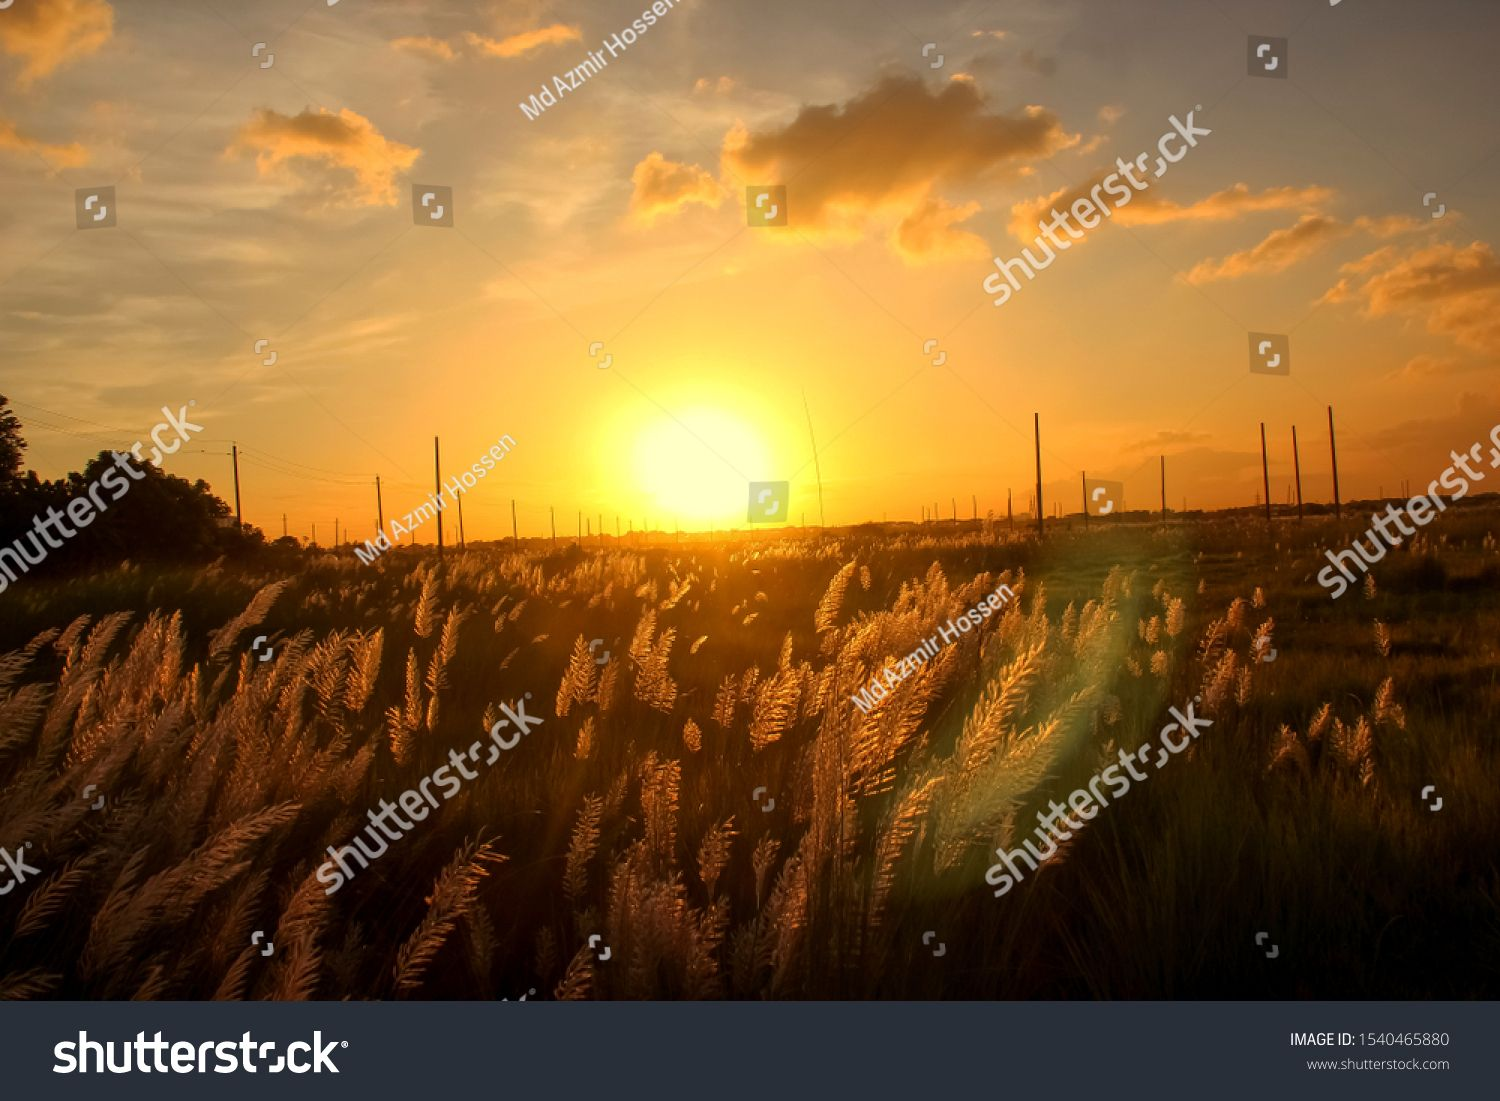 Beautiful Nature Sunset On The White Grass Field In The Summer With A Cloudy Sky Background Landscape Nature Selective Focus Beautiful Nature Sunset Nature Hd wallpaper nature reeds grass sunset